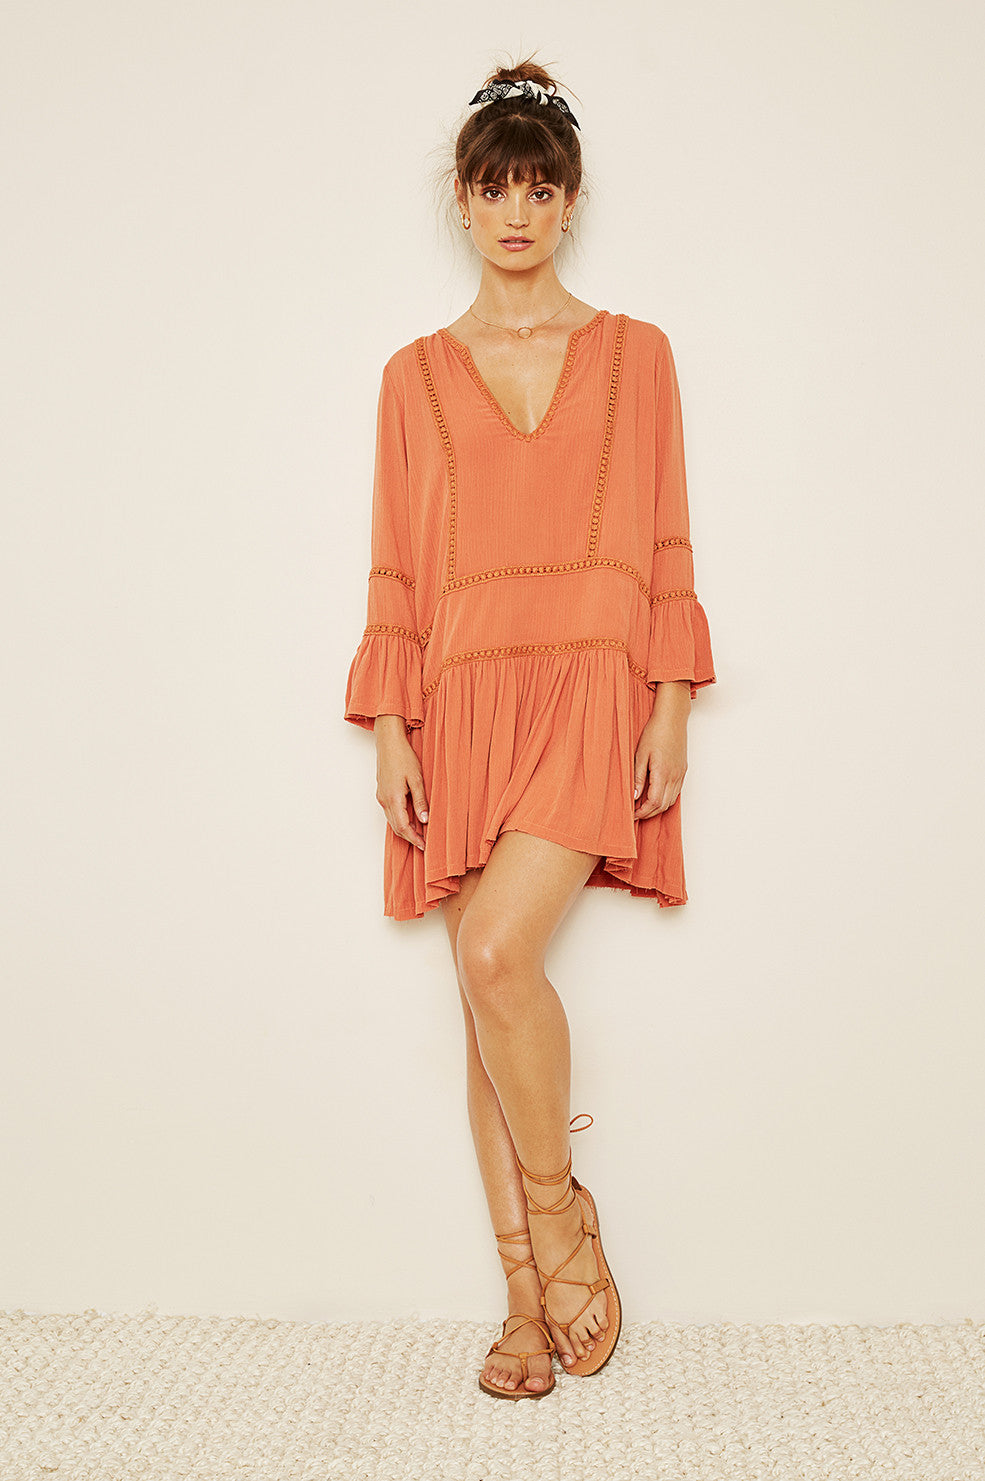 Lovely Pepa Collection | Monaco Drop-Waist Dress in Burnt Orange